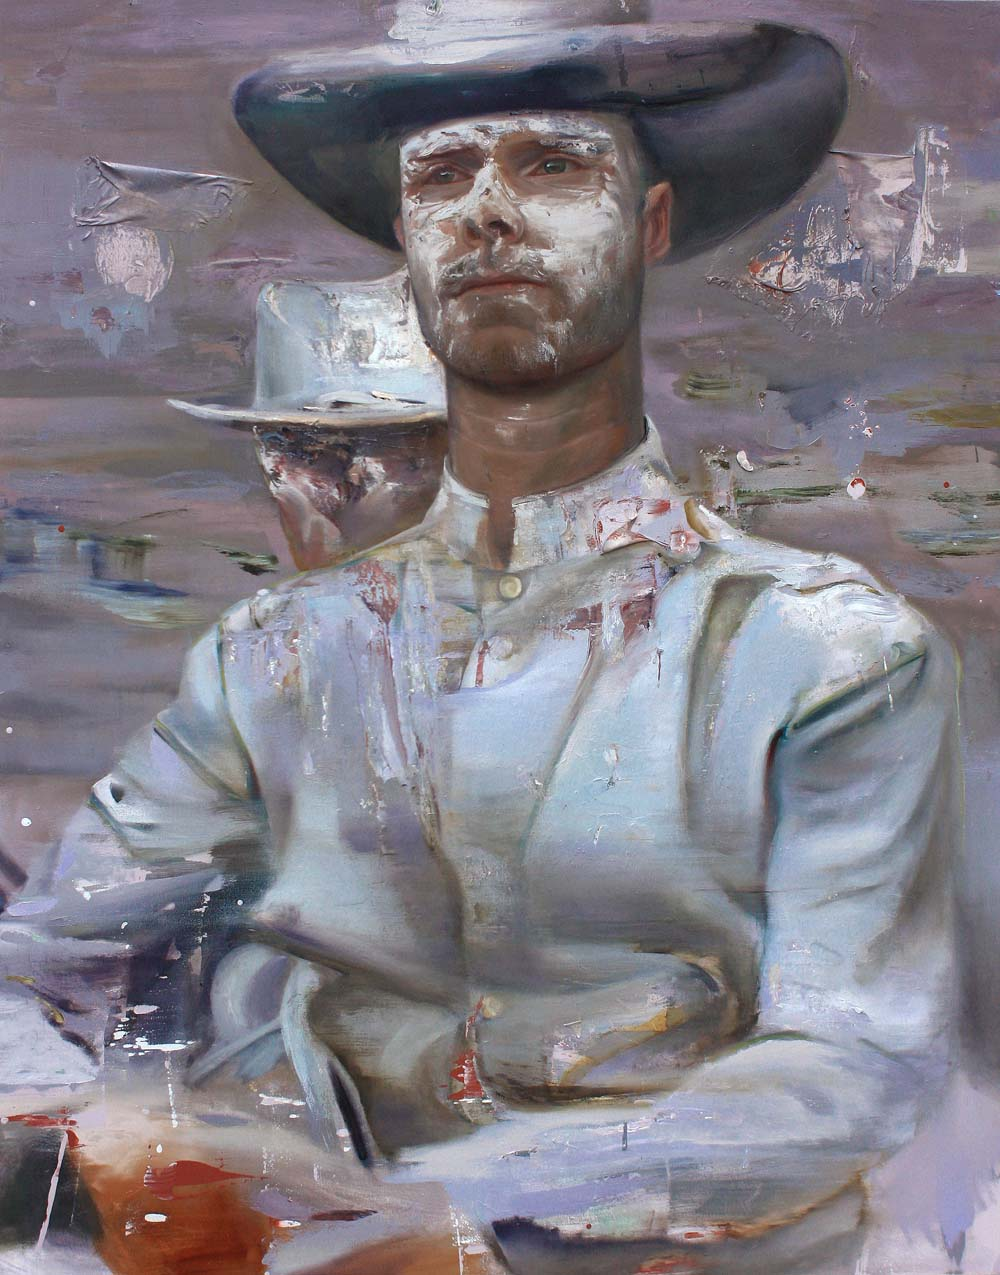 Self-portrait-confederate as Confederate Soldier - 2015 - Mixed media on canvas - 94 x 77 inches - courtesy Jaus